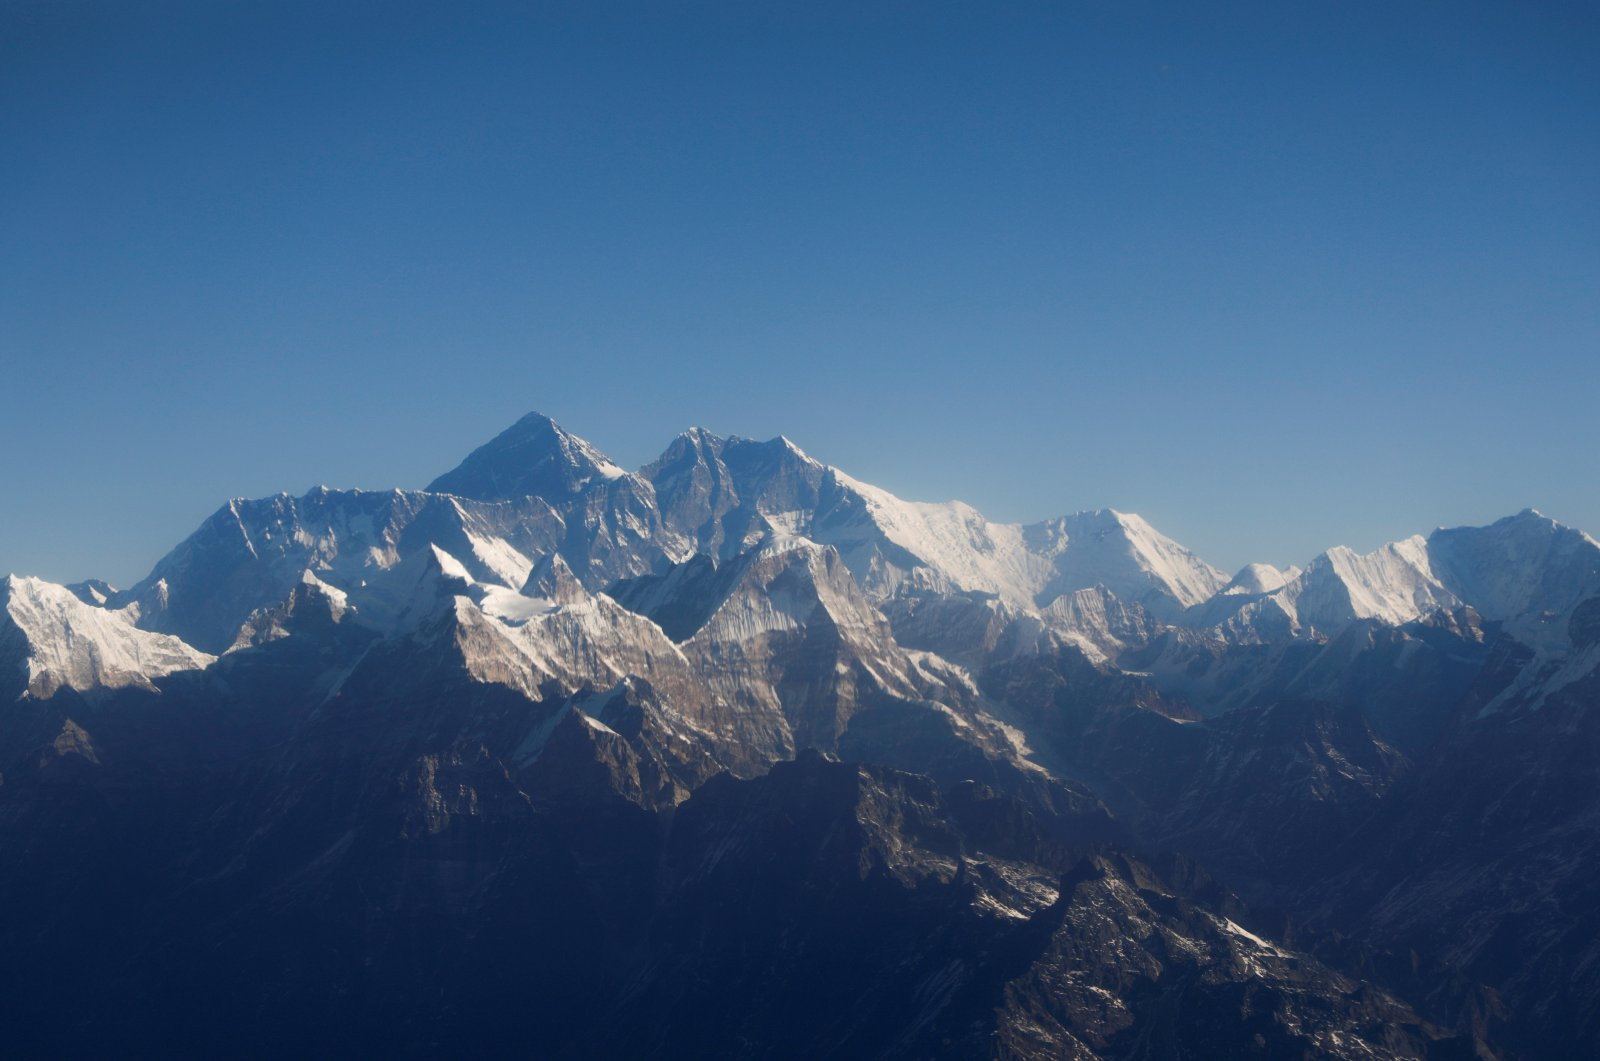 Mount Everest, the world highest peak, and other peaks of the Himalayan range are seen through an aircraft window during a mountain flight from Kathmandu, Nepal, Jan. 15, 2020. (Reuters Photo)